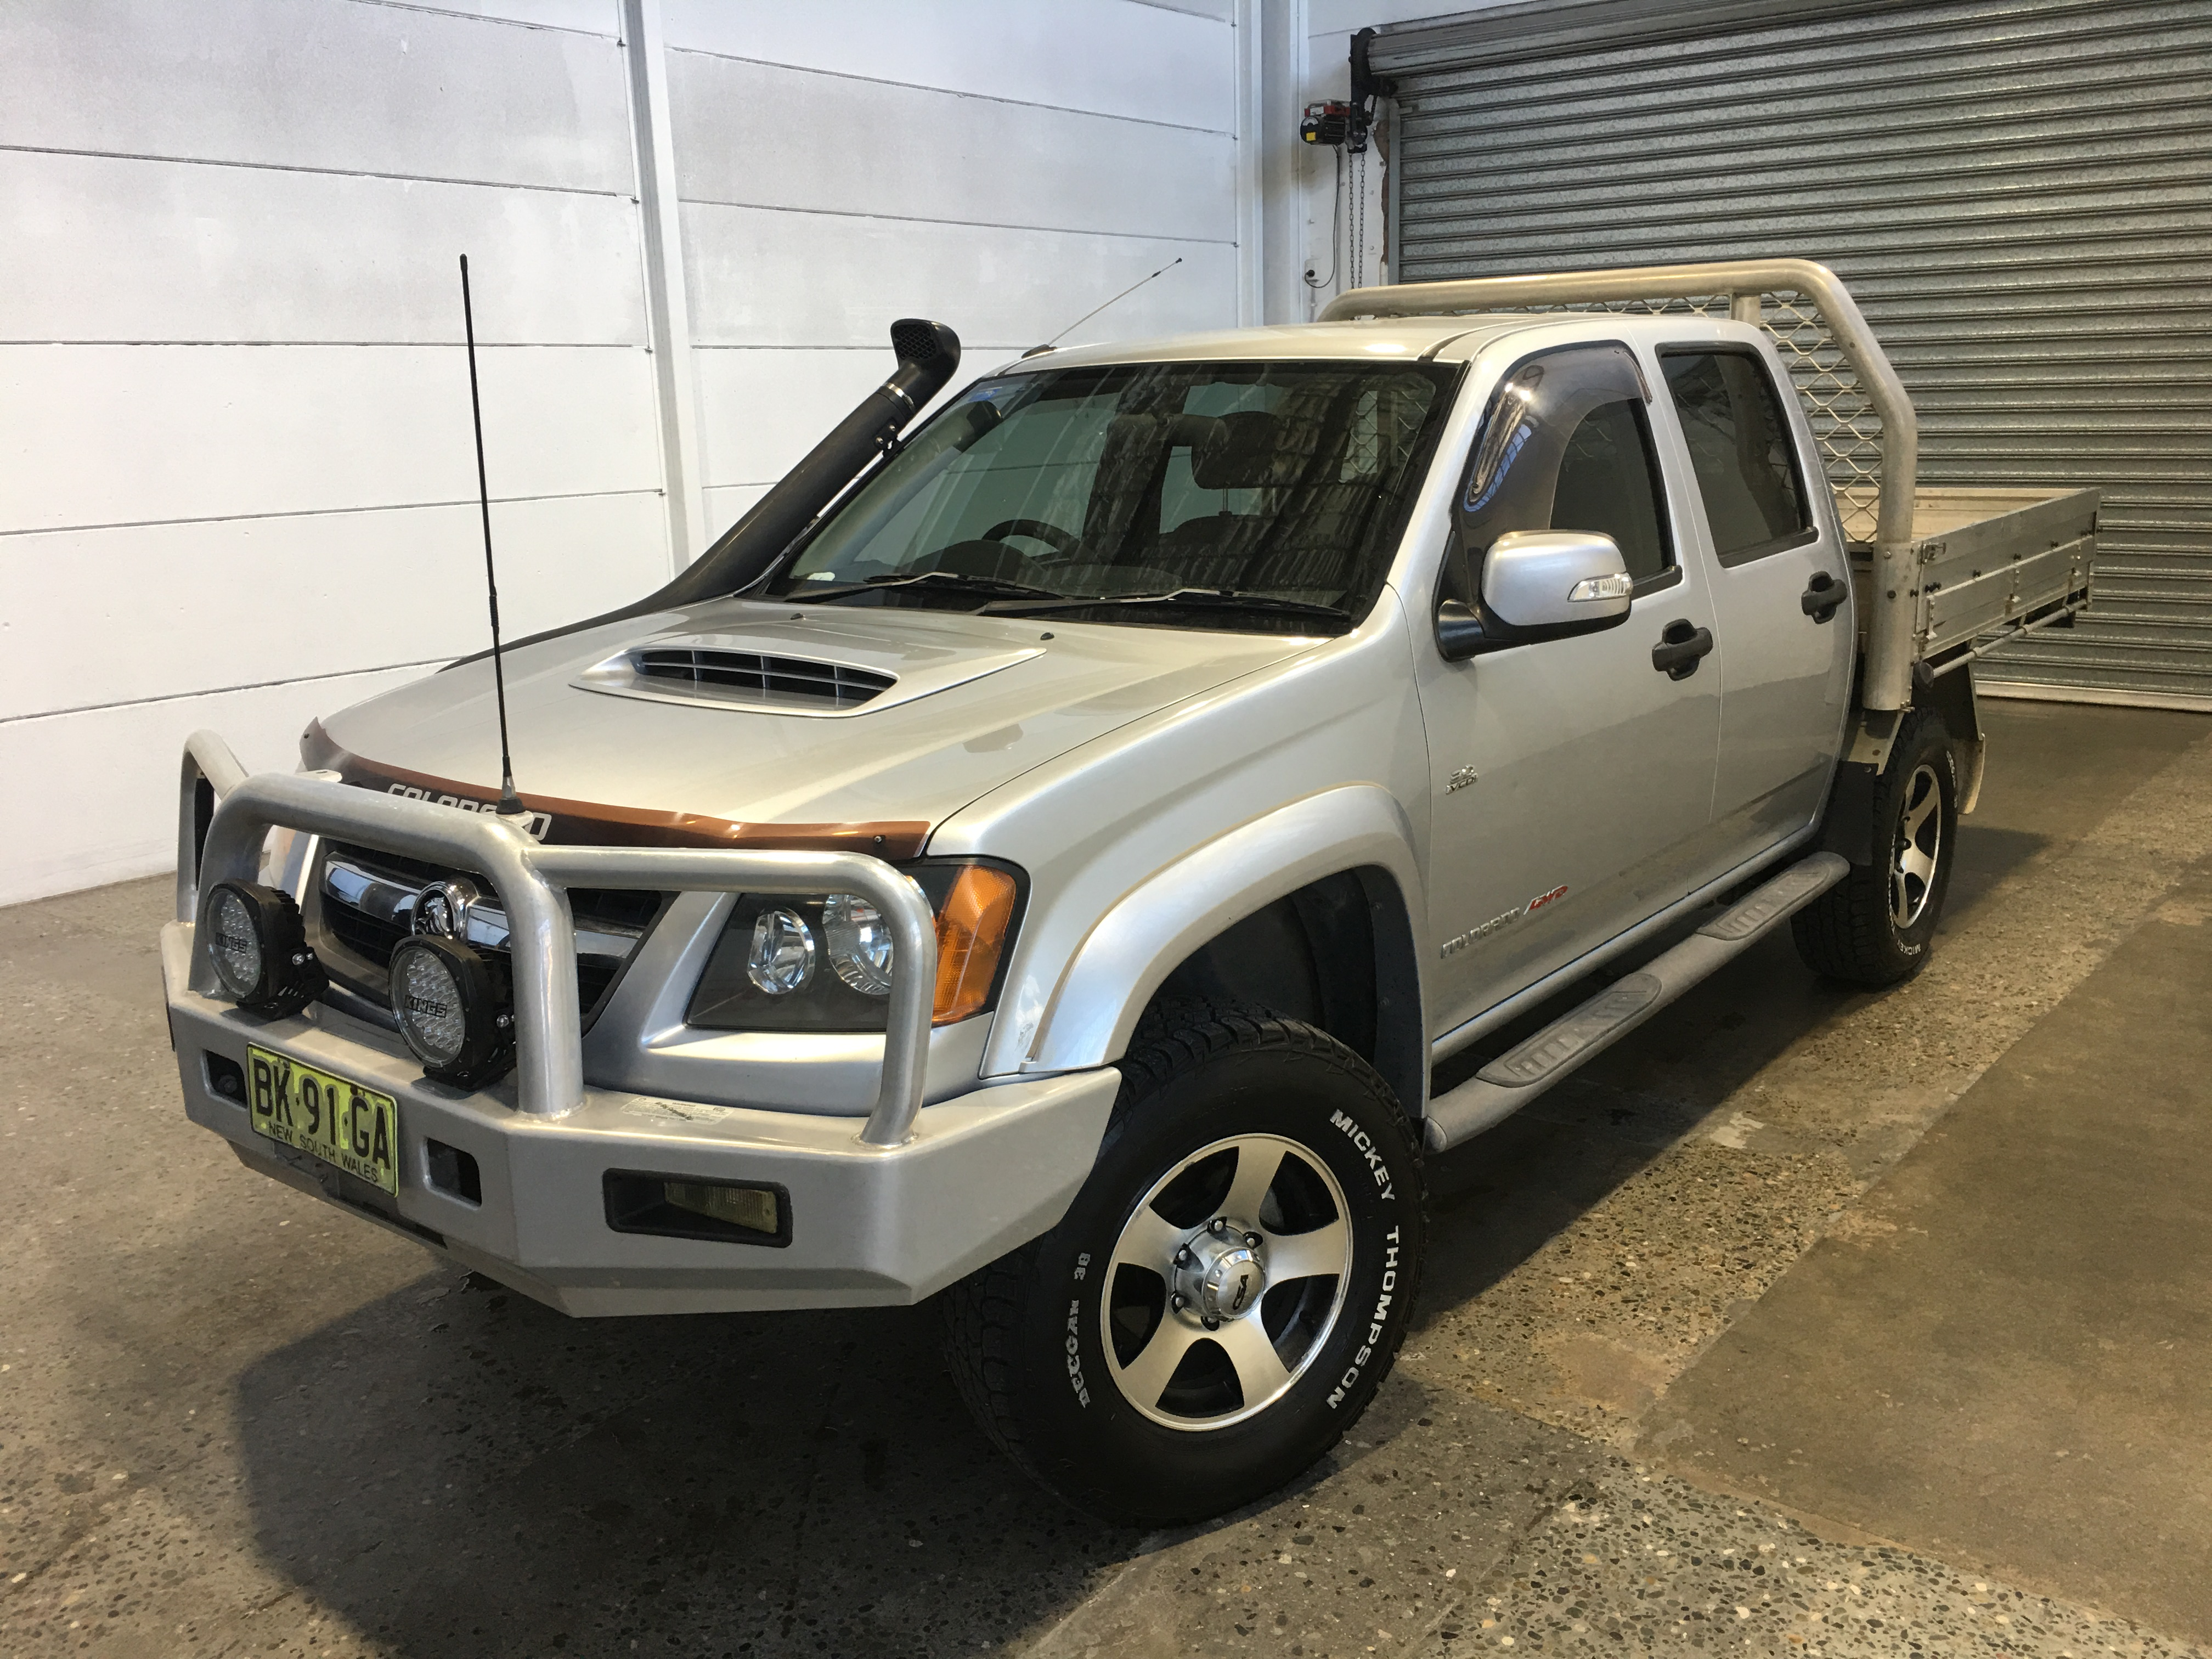 2010 Holden Colorado 4X4 LX 3.0 T/D RC Turbo Diesel Manual Dual Cab